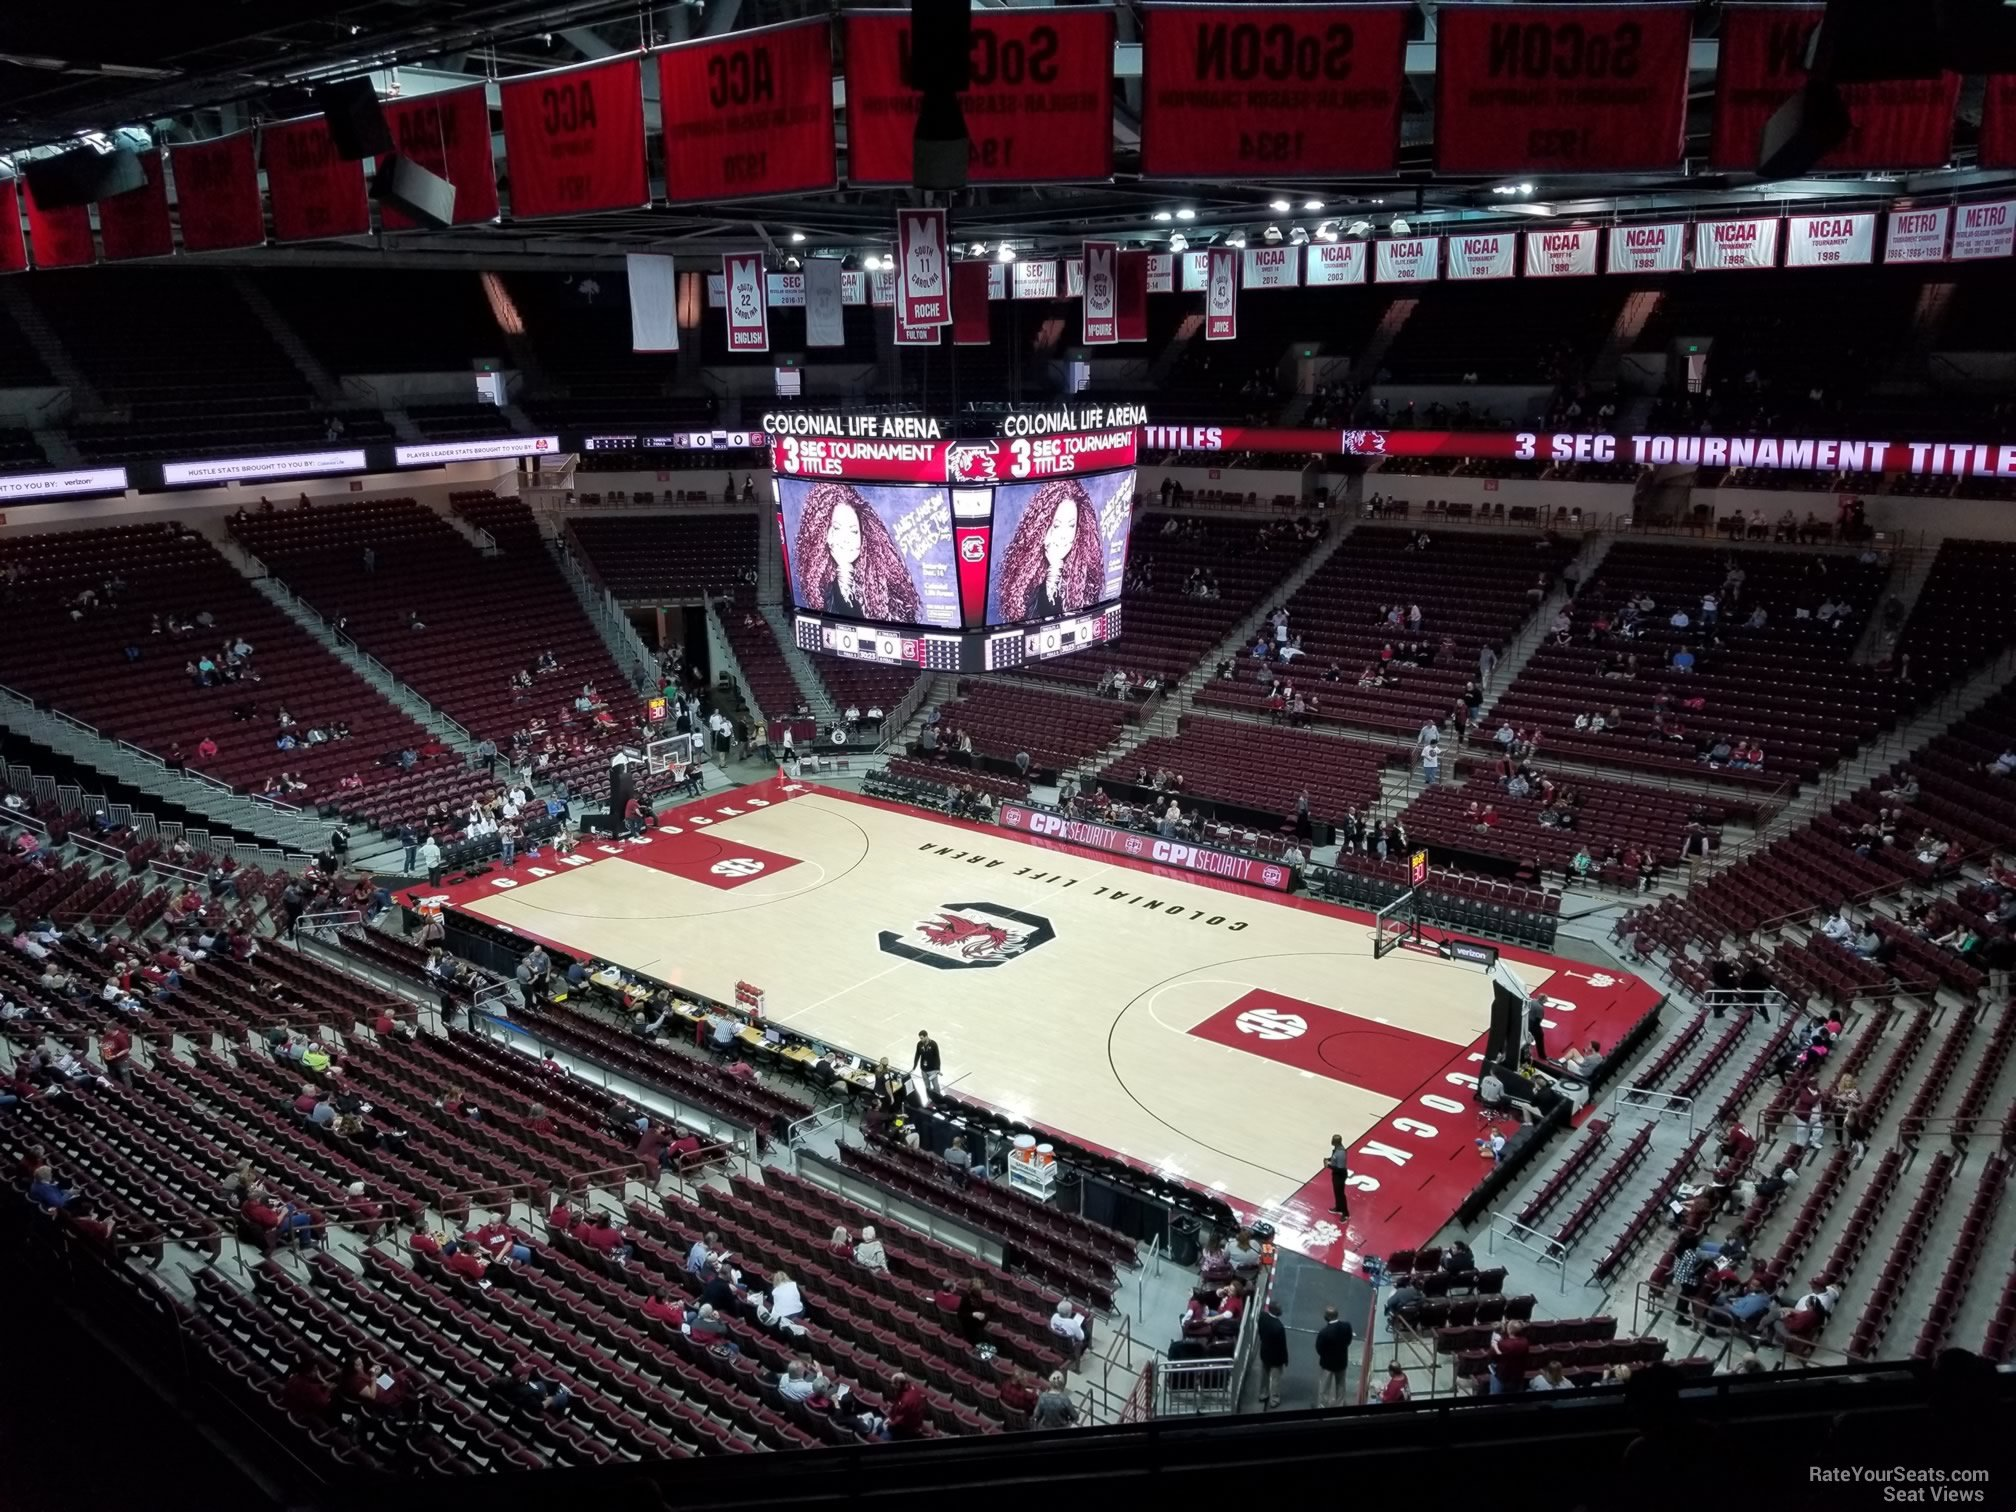 Colonial Life Arena Section 205 South